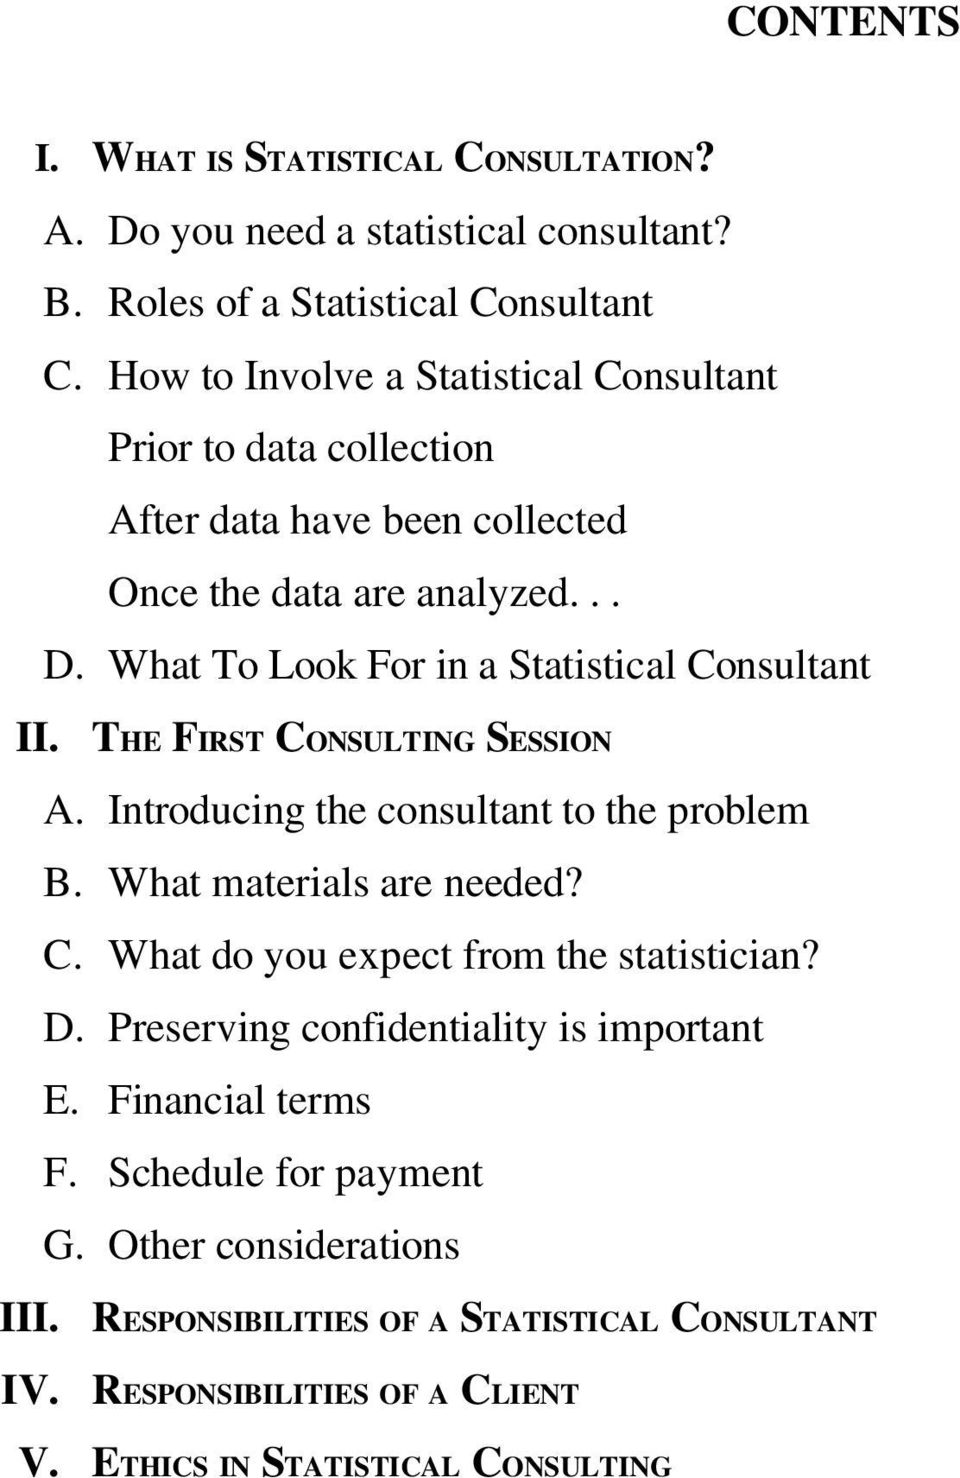 What To Look For in a Statistical Consultant II. THE FIRST CONSULTING SESSION A. Introducing the consultant to the problem B. What materials are needed? C. What do you expect from the statistician?